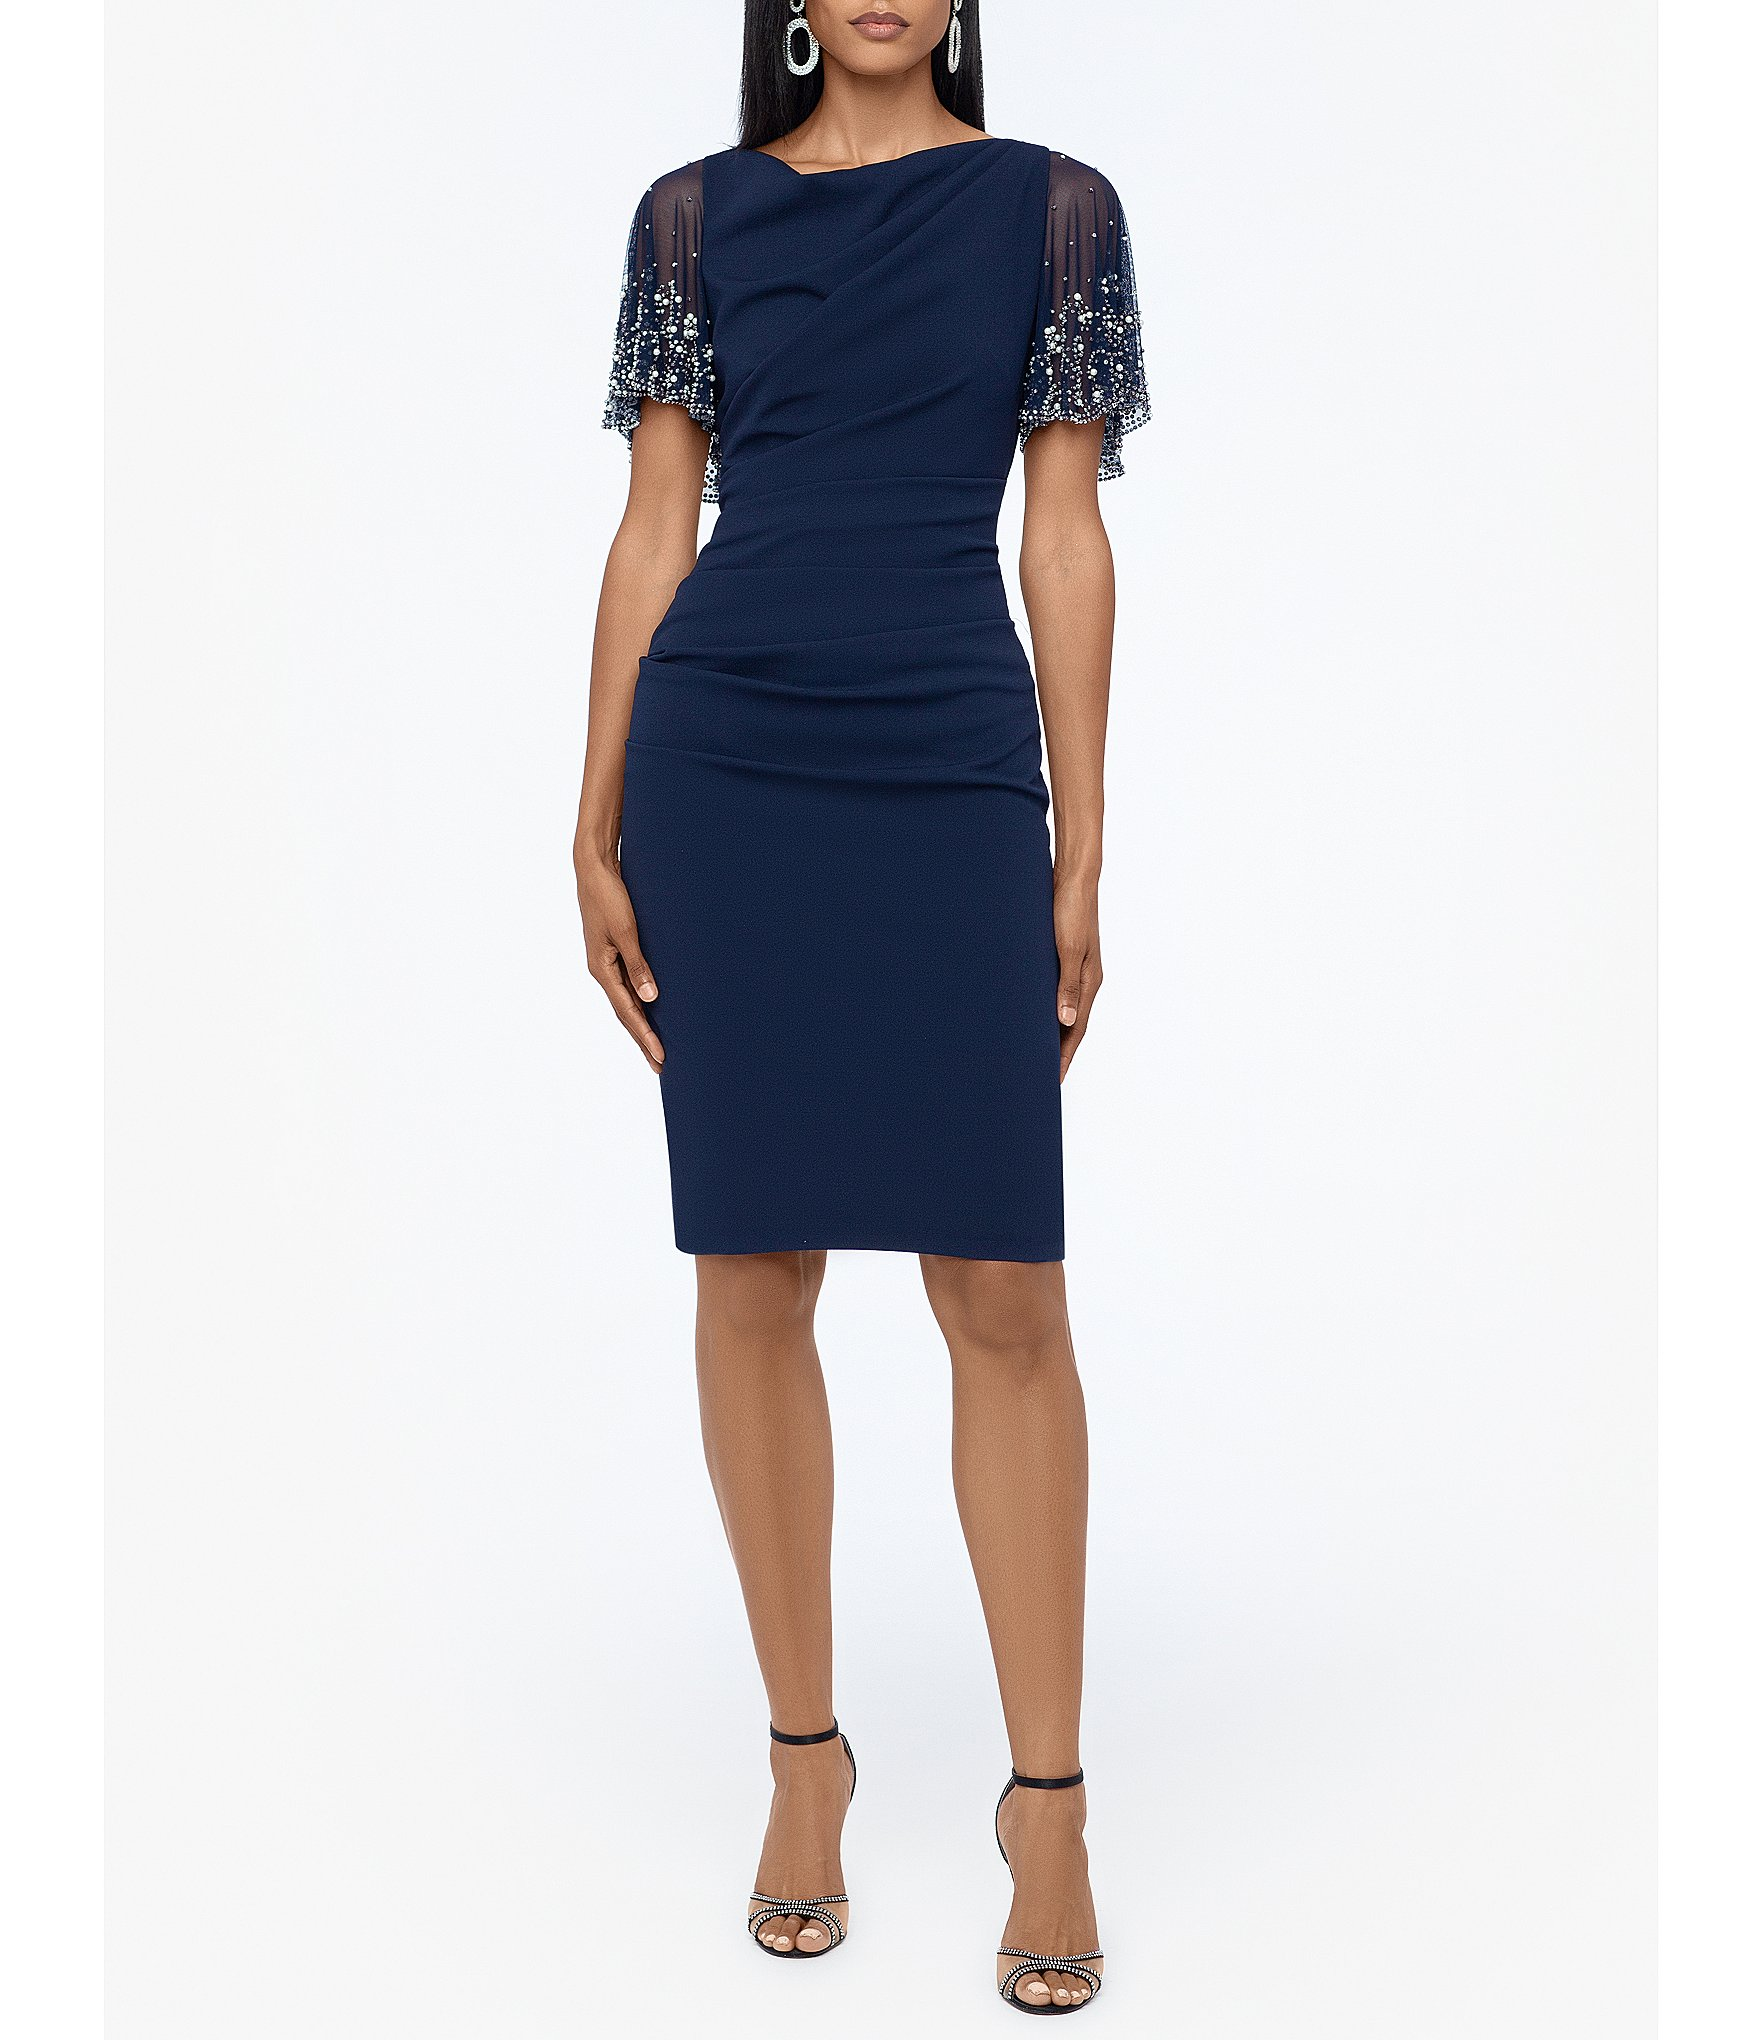 Cocktail Wedding Guest Dresses Dillard S,Dresses To Wear For Pre Wedding Shoot